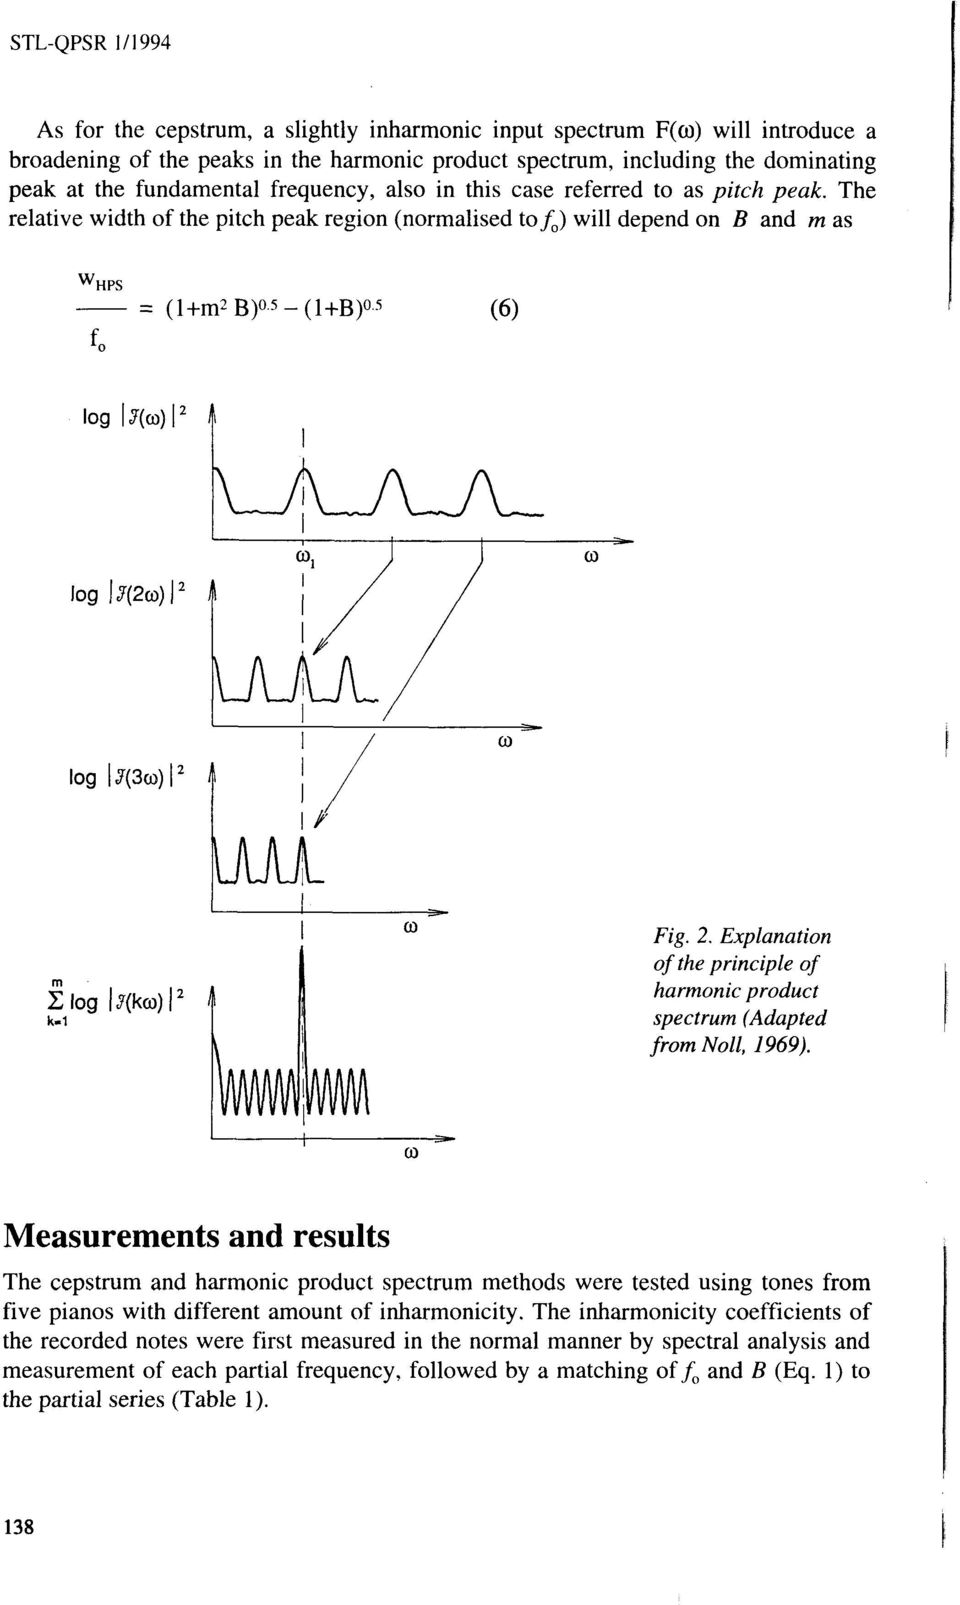 log 13(kw) 1 ' k- 1 Fig. 2. Explanation of the principle of harmonic product spectrum (Adapted from Noll, 1969).